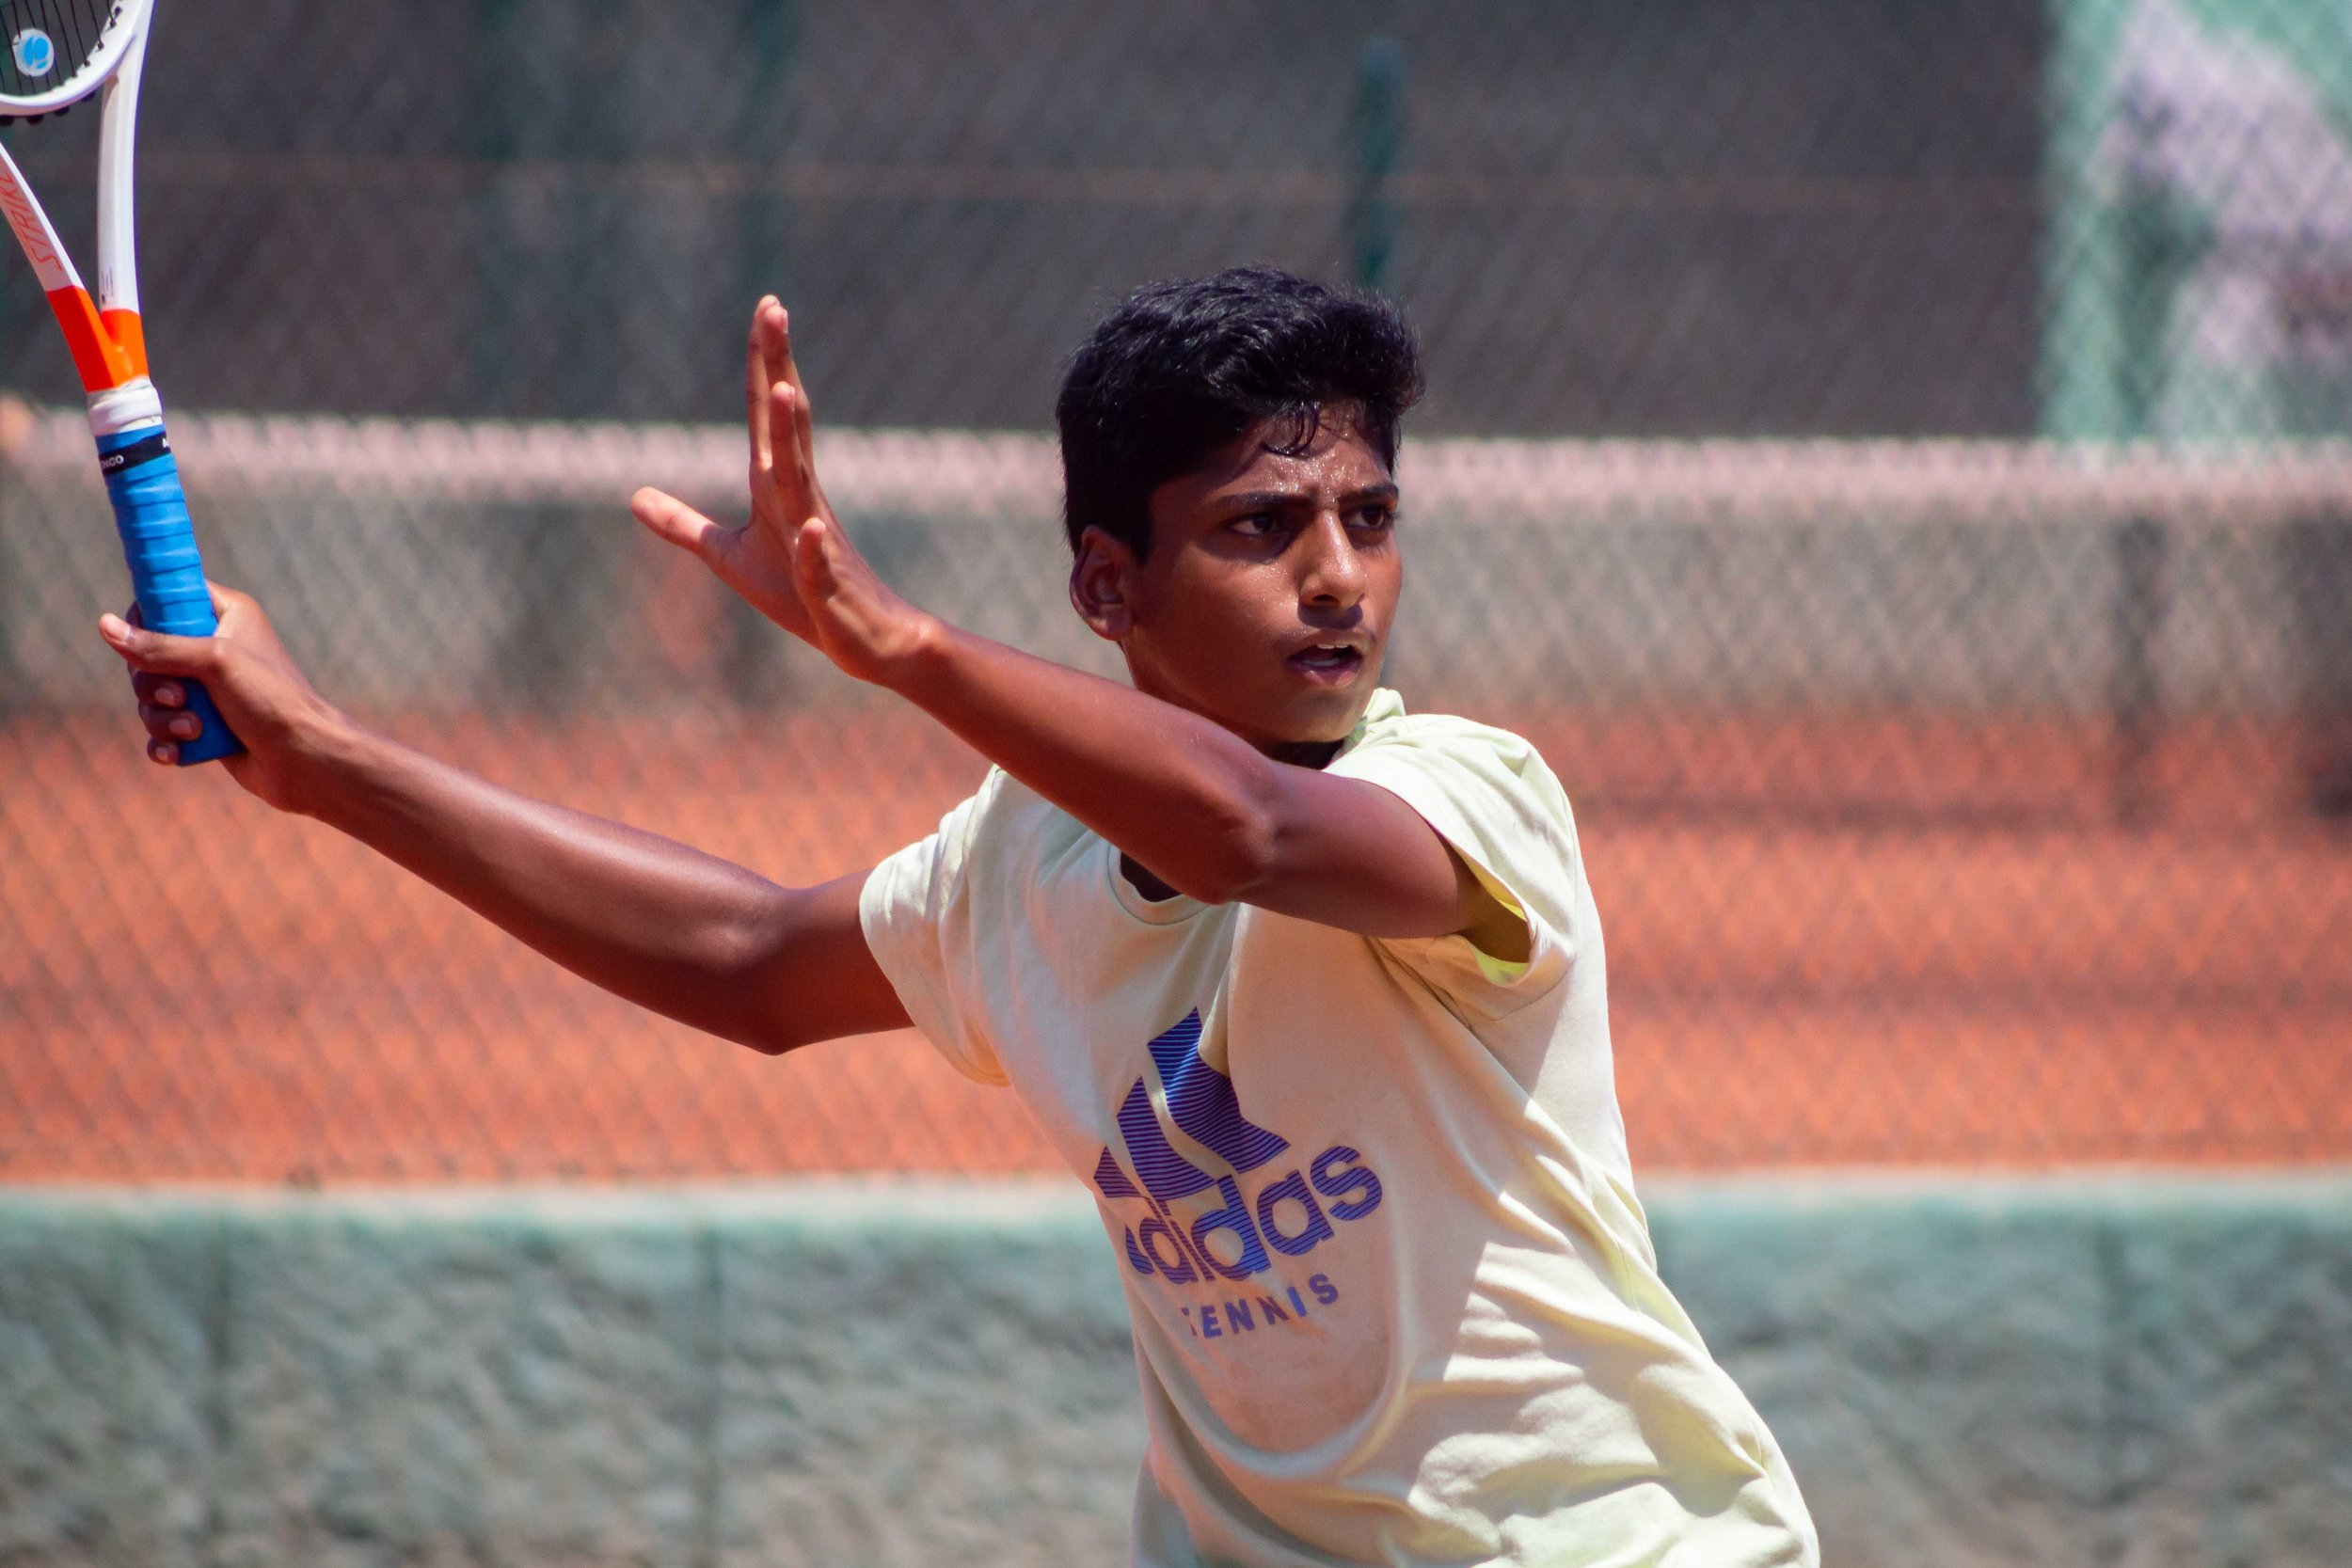 Viswa Navaneethan  - 'BTA is world class academy with dedicated, highly professional and experienced coaches. Their training methods, teaching techniques and tactics are unique when compared to other academies. Tennis is tough sport, often requiring a lot of feedback from coaches. I admire the way in which the coaches observe with intent and give valuable, specific and constructive feedback. They also have frequent communication with the parents regarding the improvement and future training scope. My coaches Rafeal, Jordane, Sixto, Louise have been selfless in training me and improving my overall tennis. My service, service return, and touches have improved significantly after training with Bta. They have worked with my base line game and now I play a solid base line game. The fitness training, footwork drills and beach training given by Sergi and Albert had helped me to improve my on court performance and sustainability in long matchesWith respect to facilities and care taken by Jordi in providing me the accommodation has eased my stay in Barcelona. They have made me feel at home during my 9 months training here.Saying about the ambience, BTA had good quality courts, well established fitness gym and its location very close to the beach is added attraction. Overall training in Bta is a joyful and intense training to reach the professionalism in tennis.'